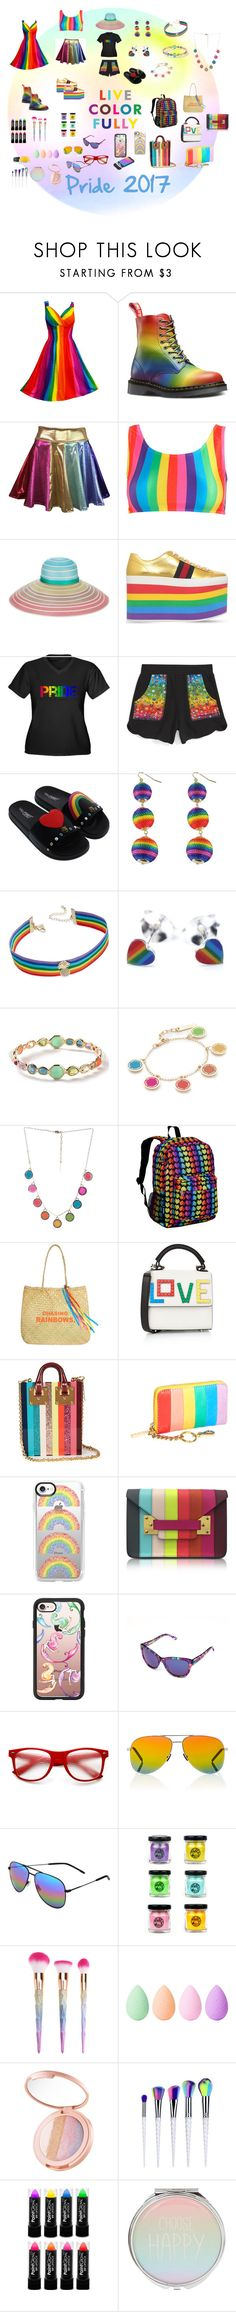 """Live Color Fully/ Pride 2017"" by neesyrn on Polyvore featuring Missoni, Gucci, Terez, Via Pinky, INC International Concepts, Ippolita, Marc Jacobs, Wildkin, Les Petits Joueurs and Sophie Hulme"